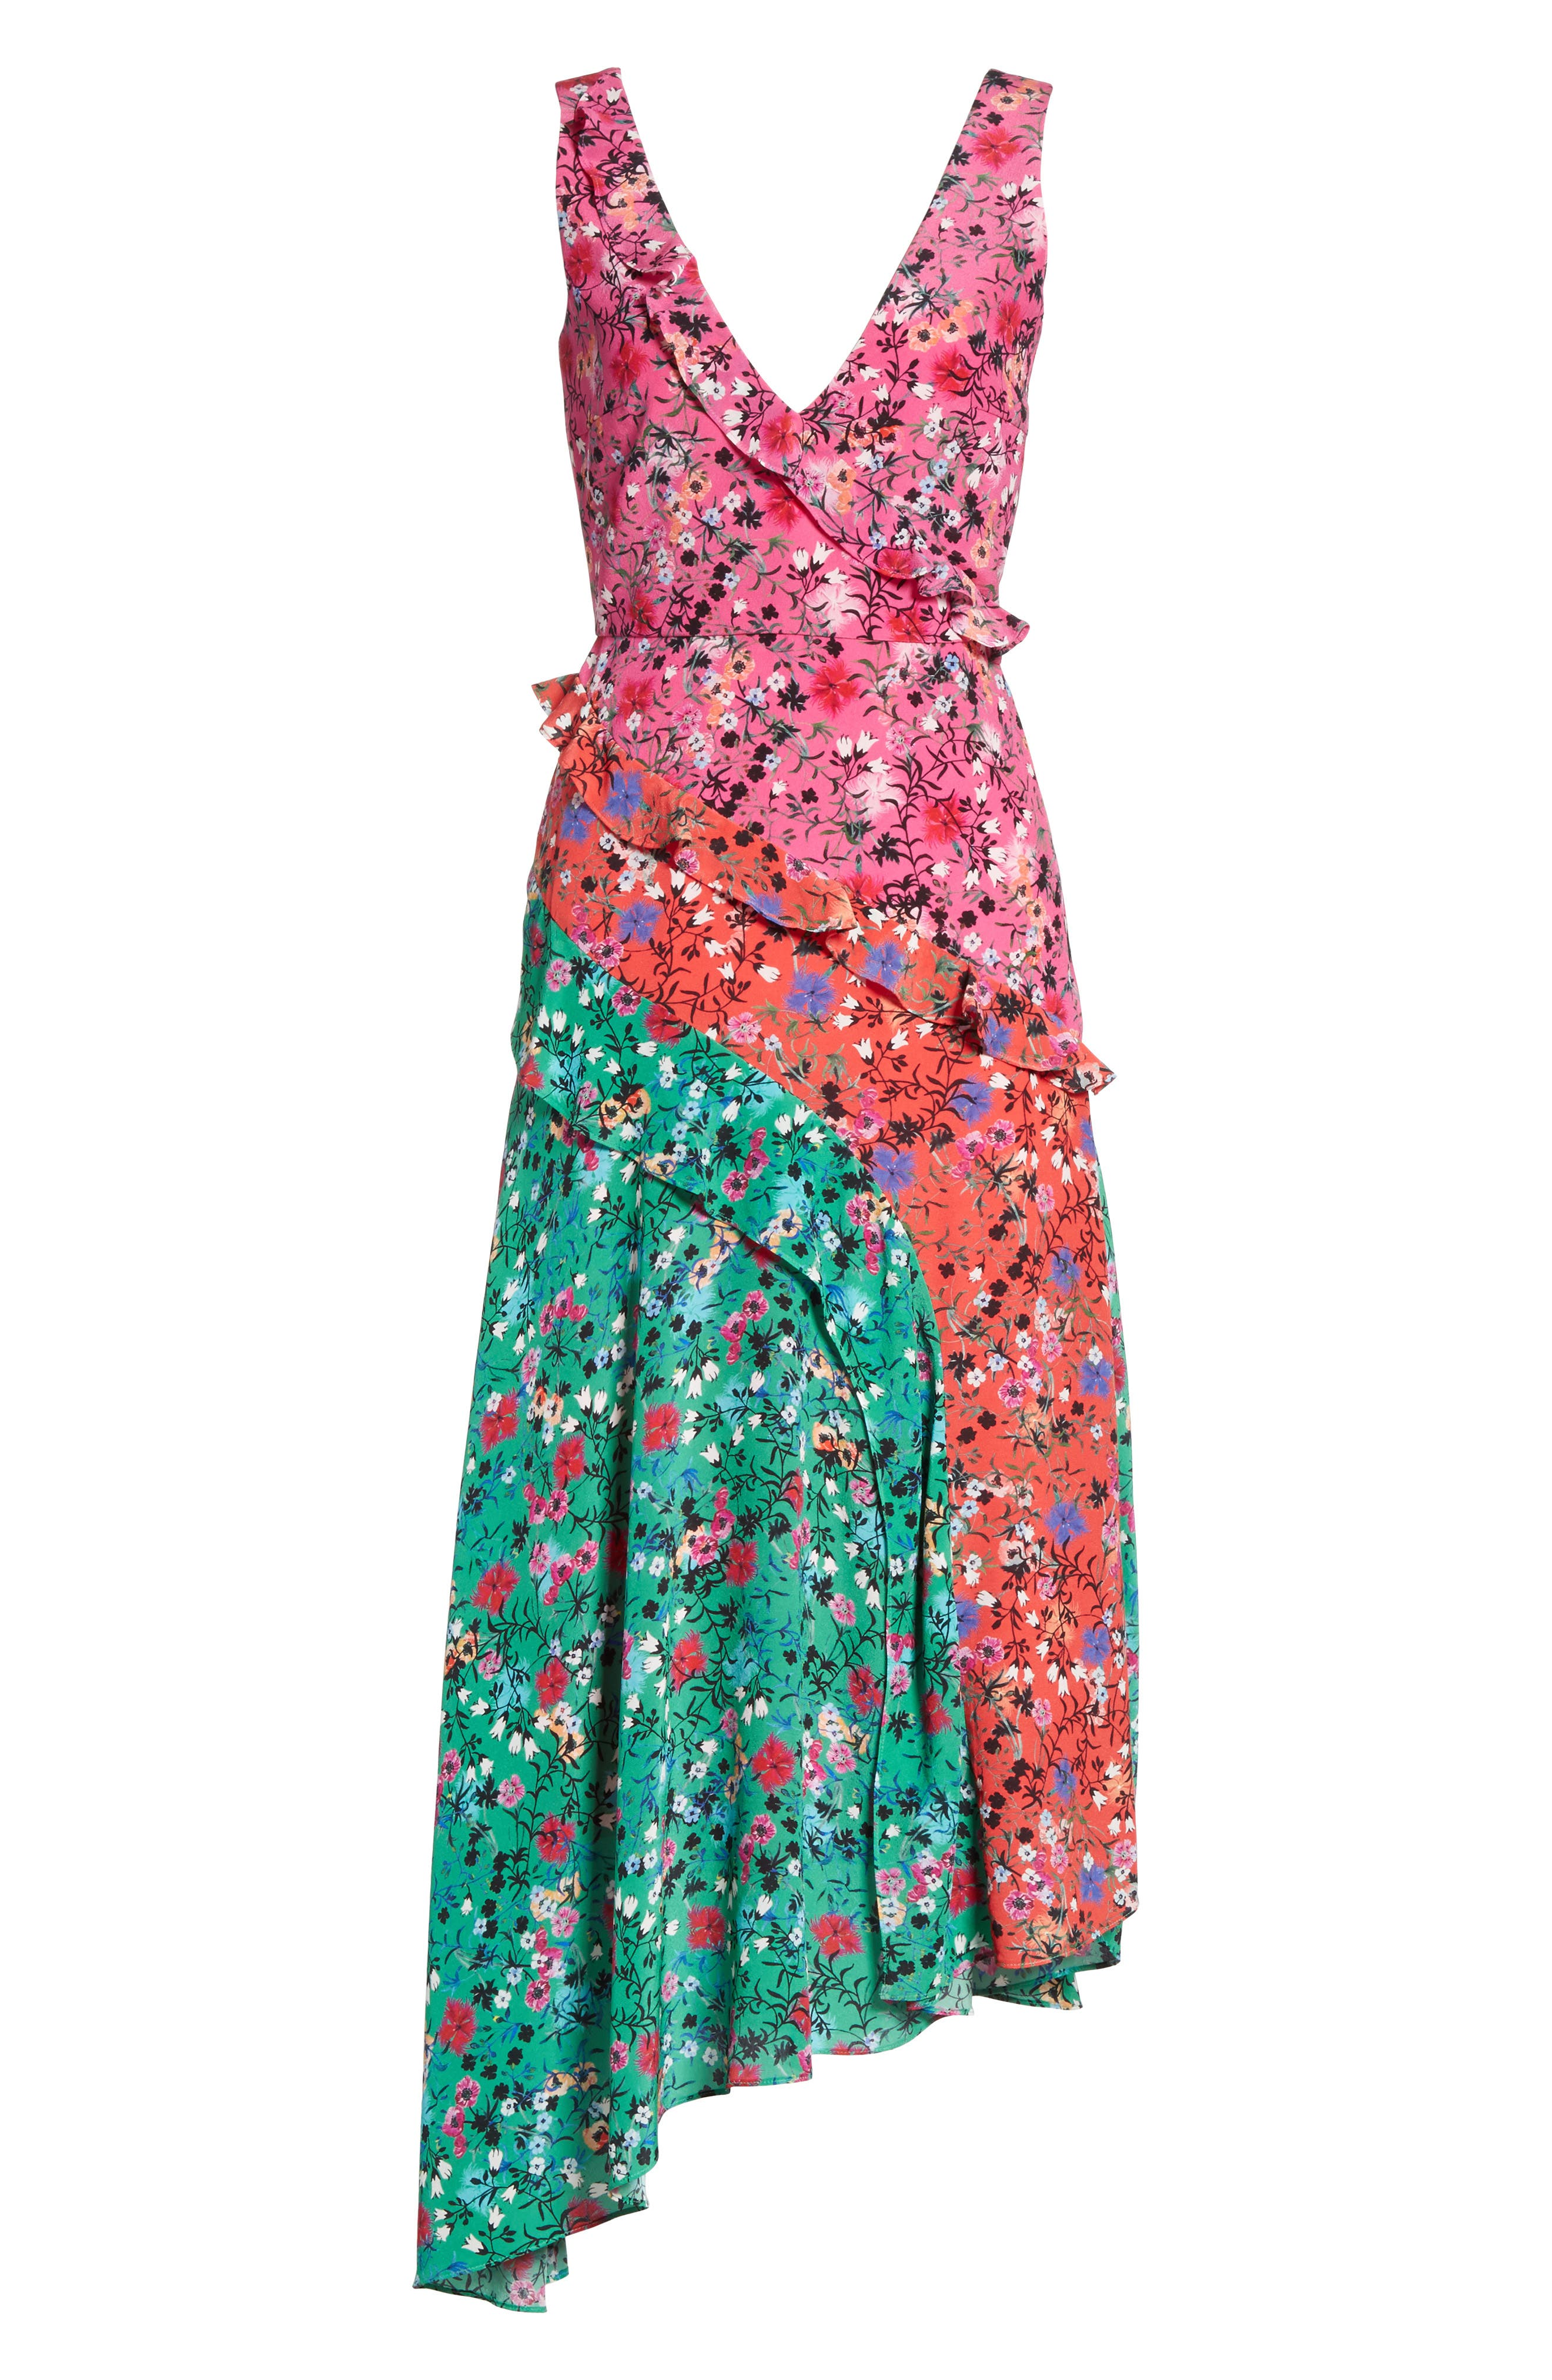 Aggie Floral Print Silk Dress,                             Alternate thumbnail 6, color,                             Pink Meadow